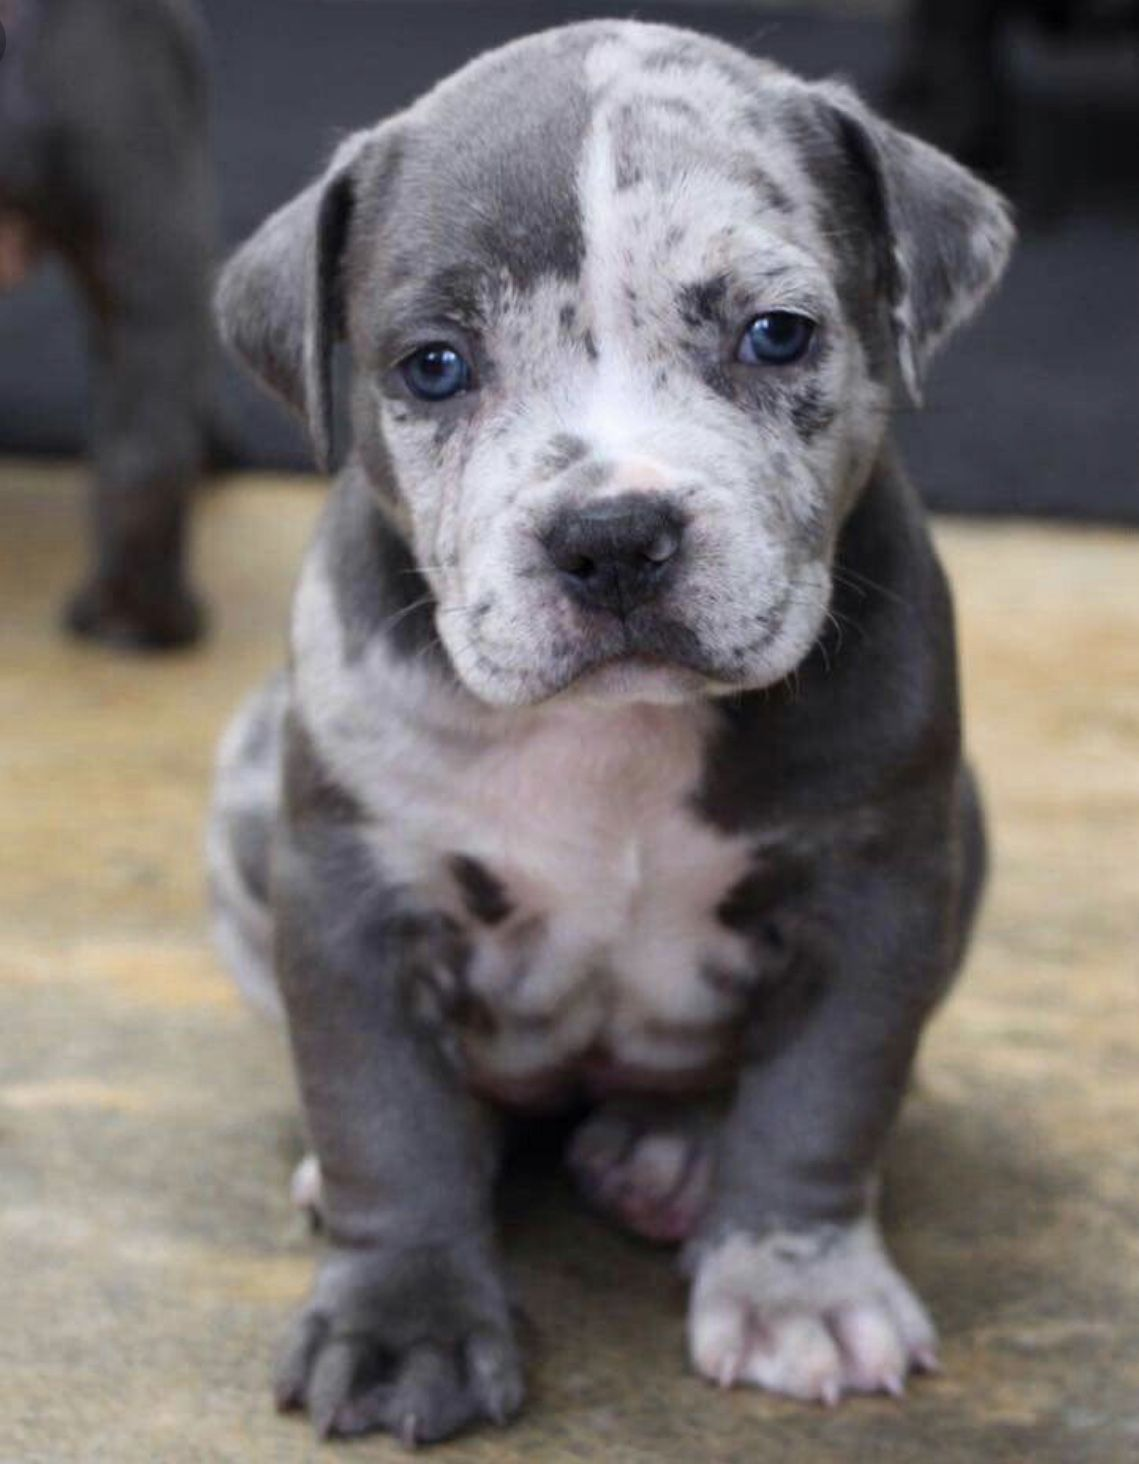 All About The Fur Babies Image By Stacey Wilson Pitbull Mix